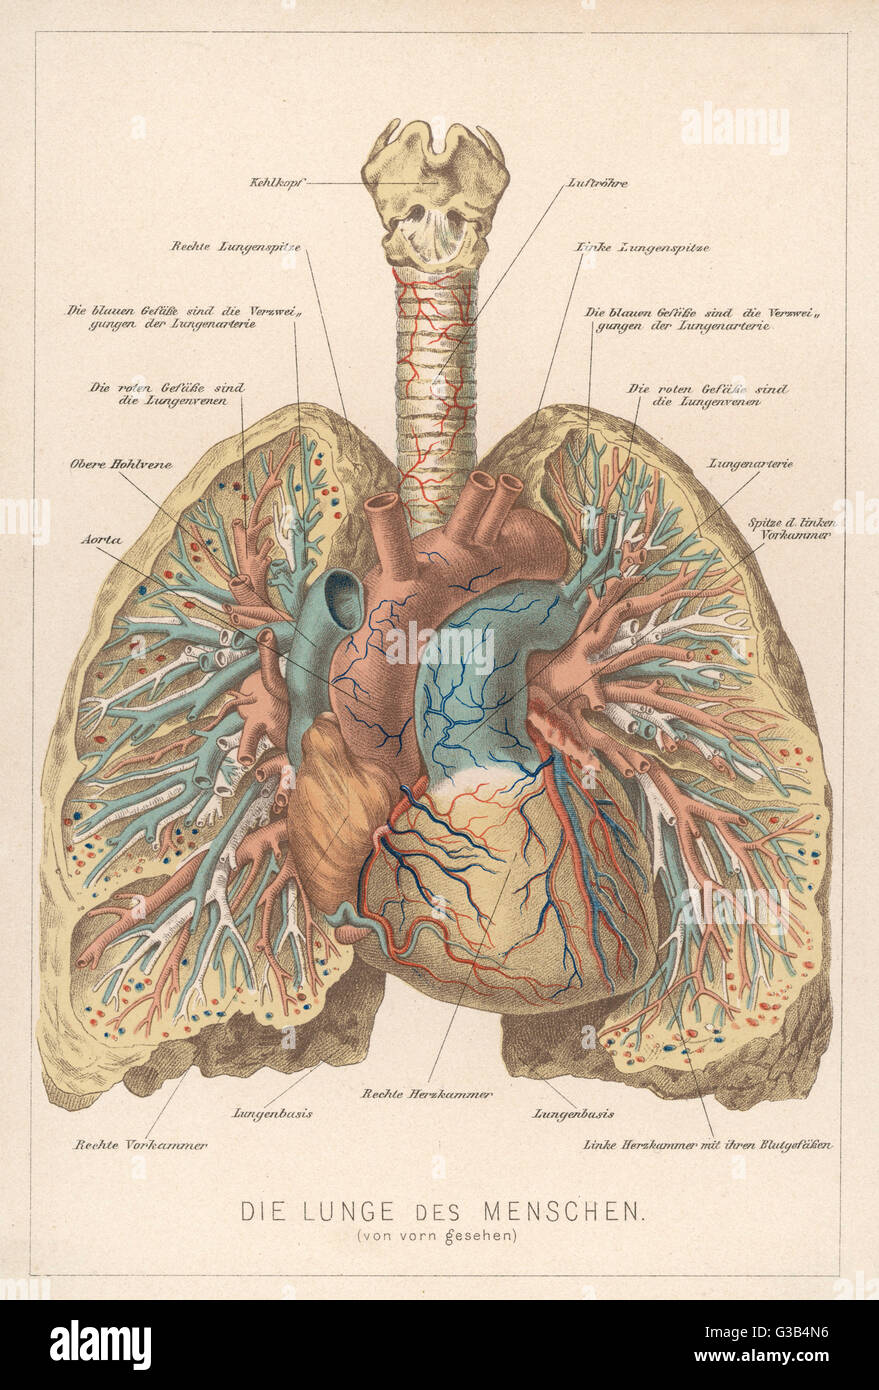 costal surface of lung, lung nodules, lung drawing, mediastinal surface of lung, clara cell, lung lobes, lung infection, conducting zone, lung model, respiratory bronchiole, bronchopulmonary segment, lung structure, lung hilum, base of lung, borders of lung, apex of lung, alveolar duct, horizontal fissure of right lung, lingula of left lung, lung cartoon, lung cross section, lung function, lung health, lung segments, lung apex, lung animation, lung disease, root of the lung, oblique fissure, lung force, cardiac notch, lung bleb, terminal bronchiole, hilum of lung, lung tree birds, right lung, lung mri, lung volumes, pulmonary alveolus, on lungs diagram